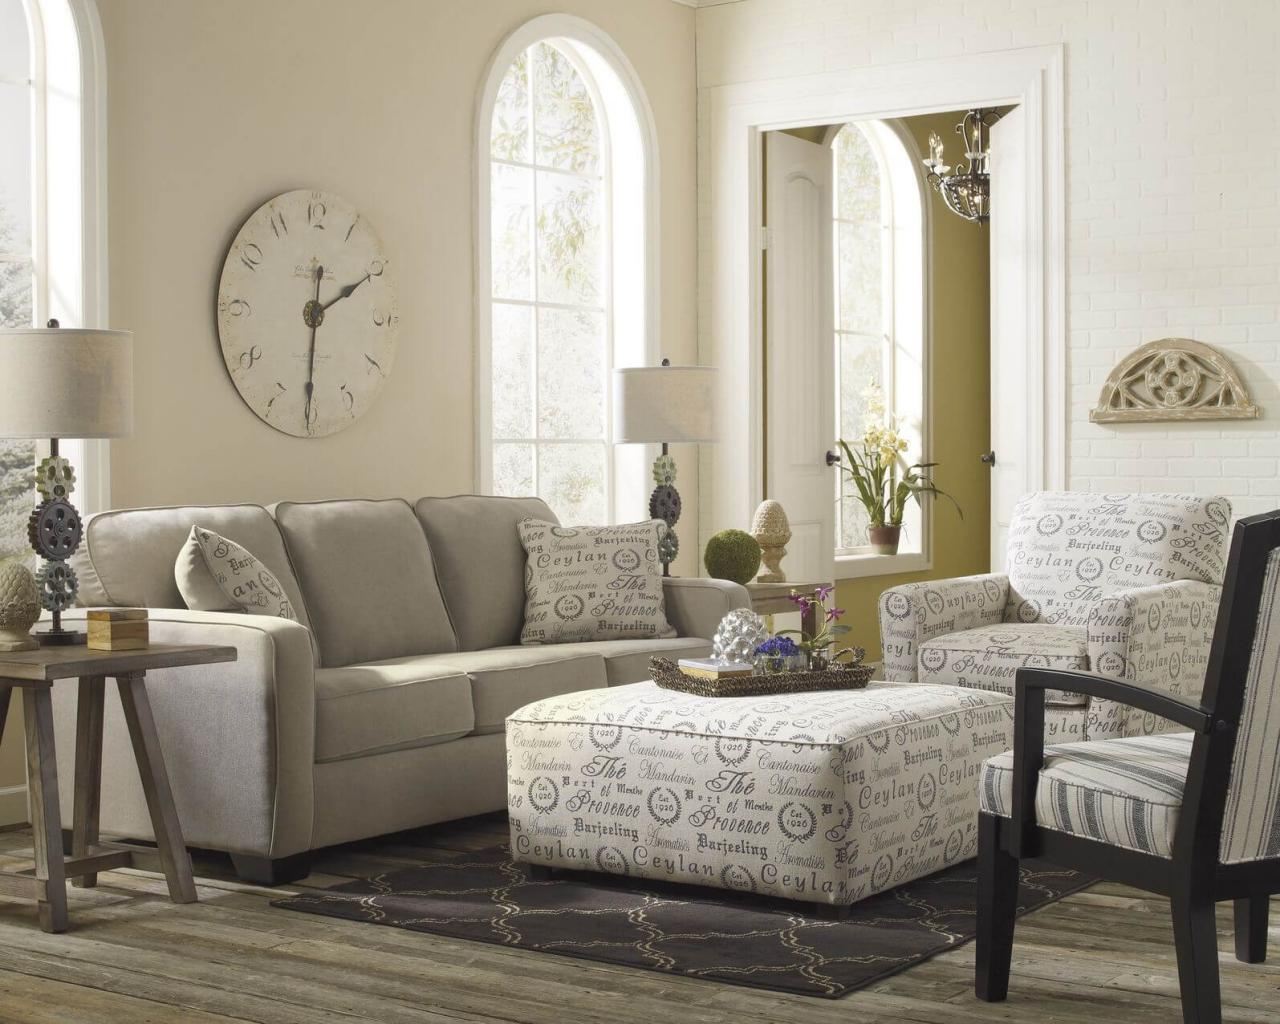 A cozy beige living room radiating hospitality